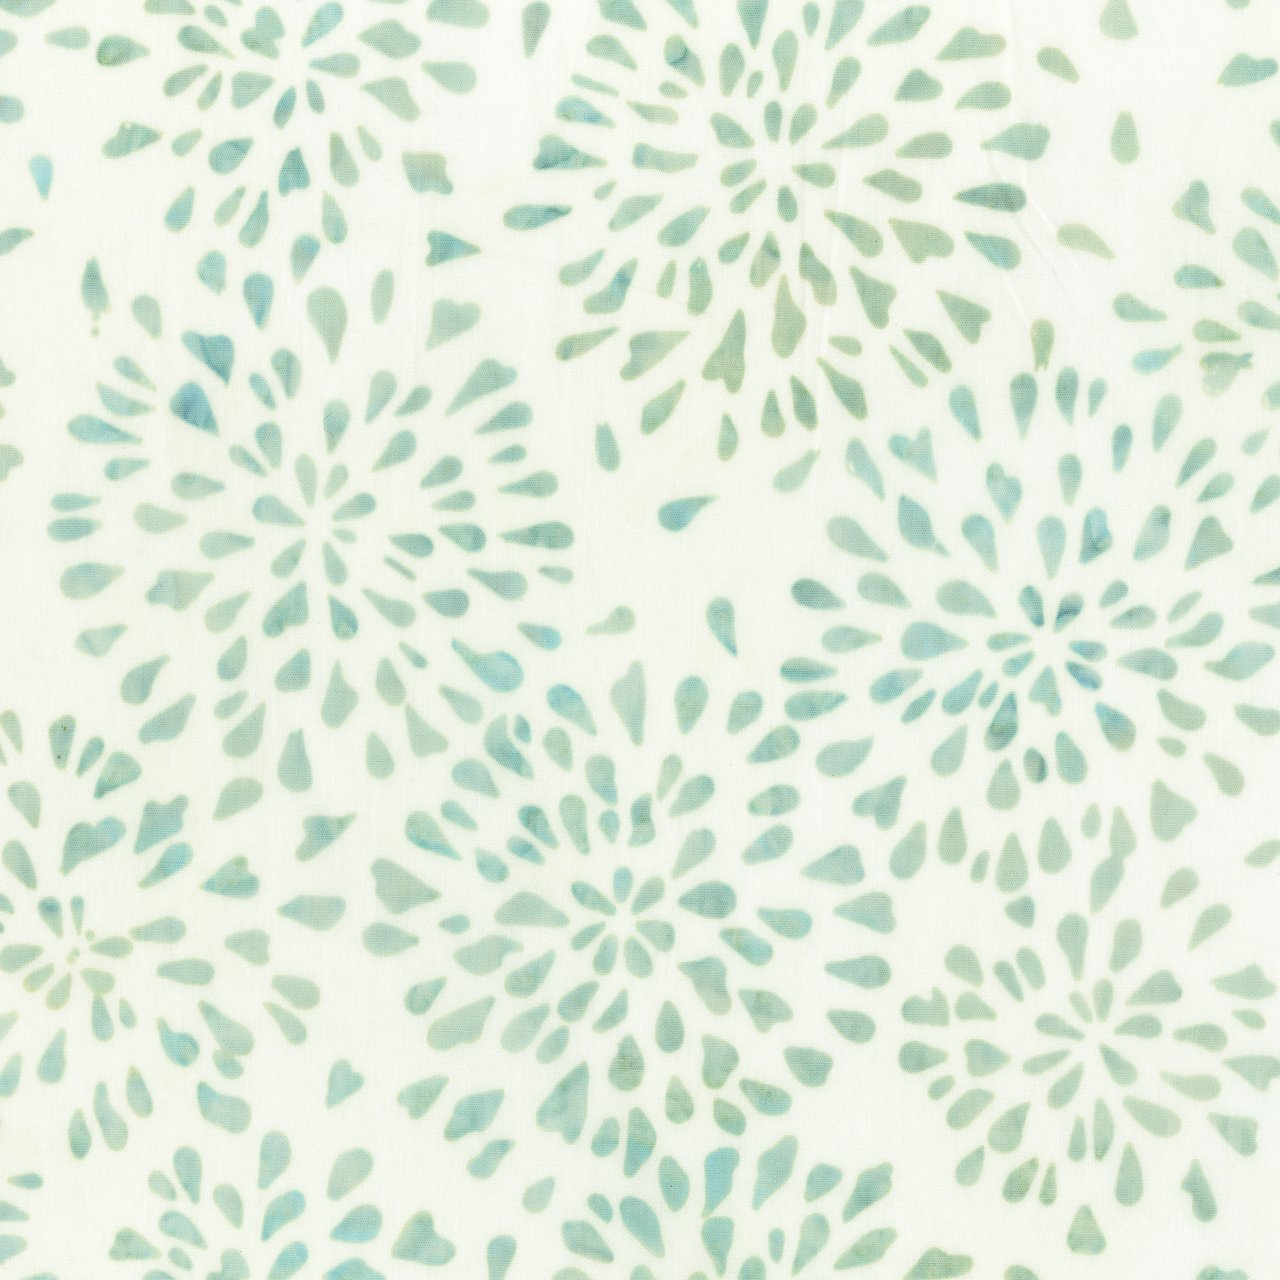 ANTH- Starburst Batik Pale Sea Green